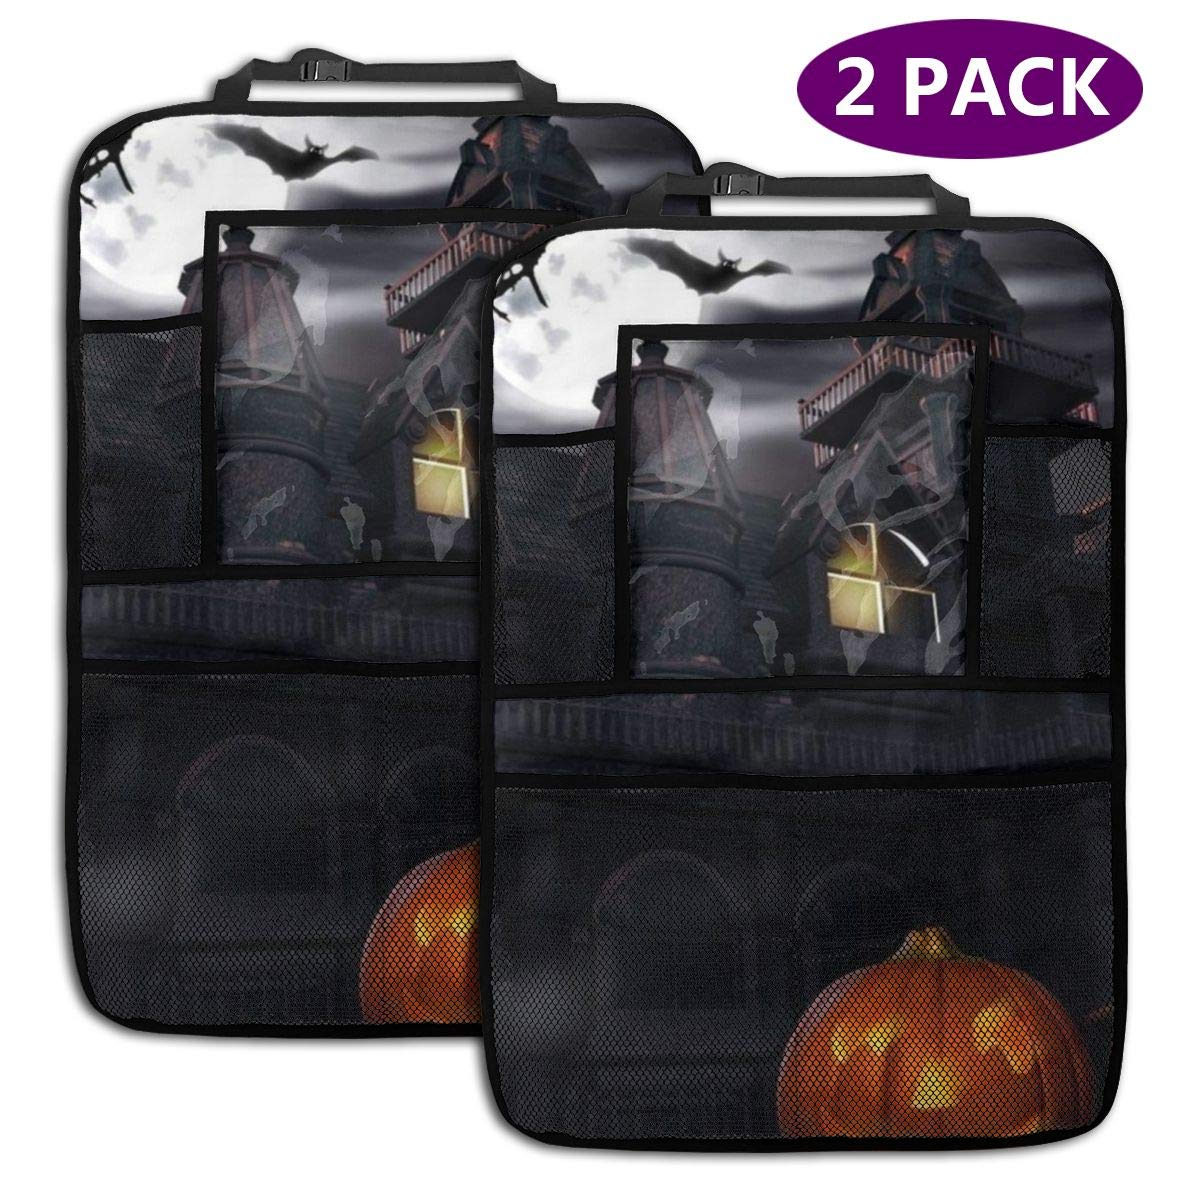 QF6FEICHAN Halloween Haunted House Car Seat Back Protectors with Storage Pockets Kick Mats Accessories for Kids and Toddlers by QF6FEICHAN